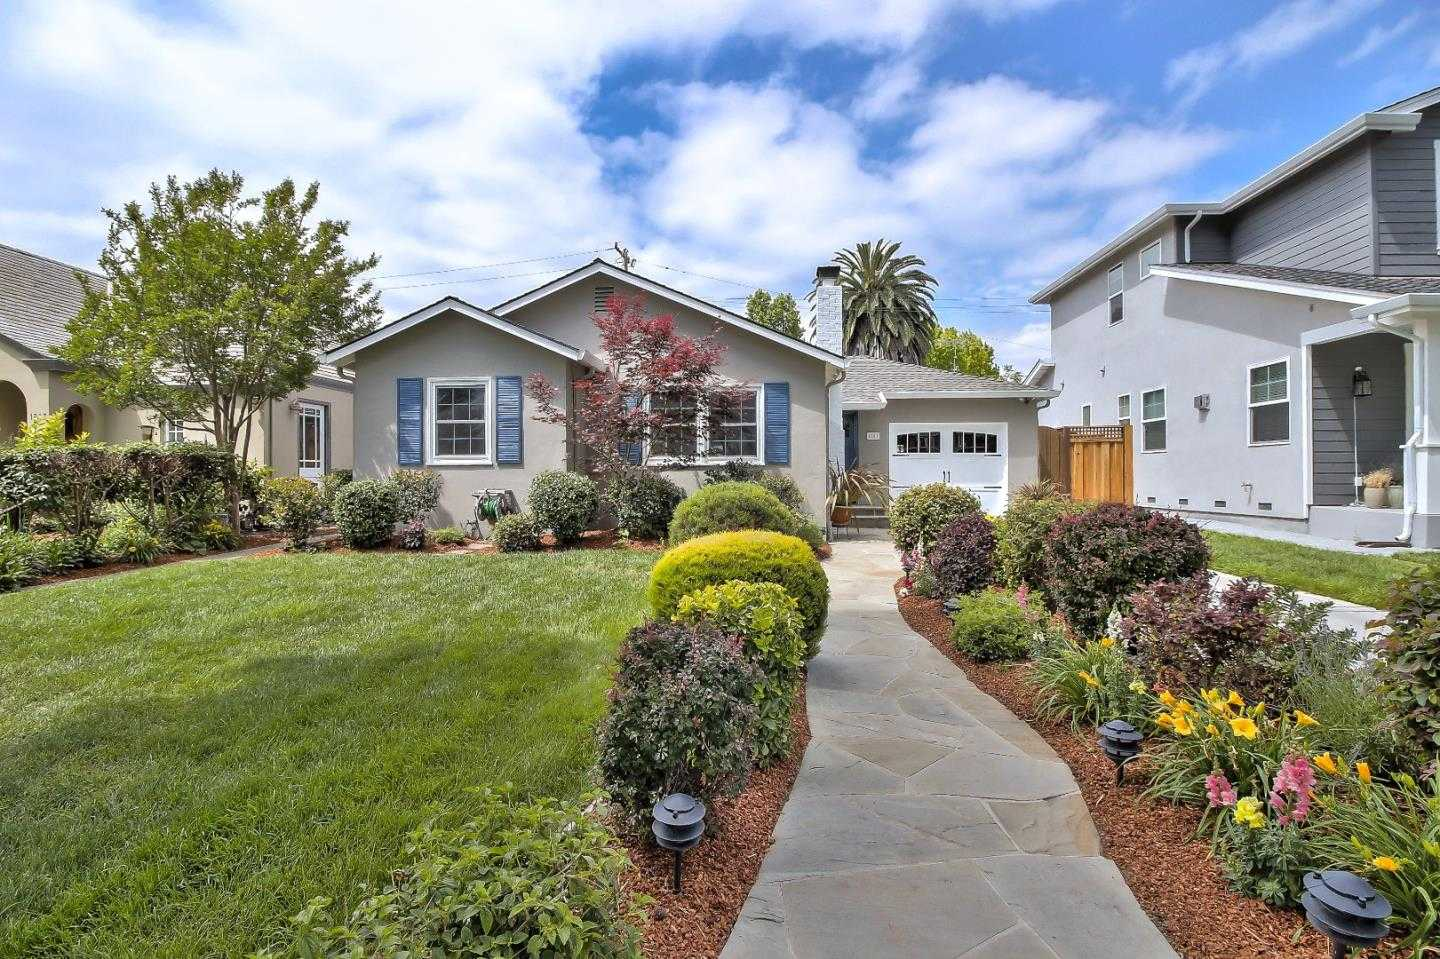 $1,295,000 - 3Br/2Ba -  for Sale in San Jose